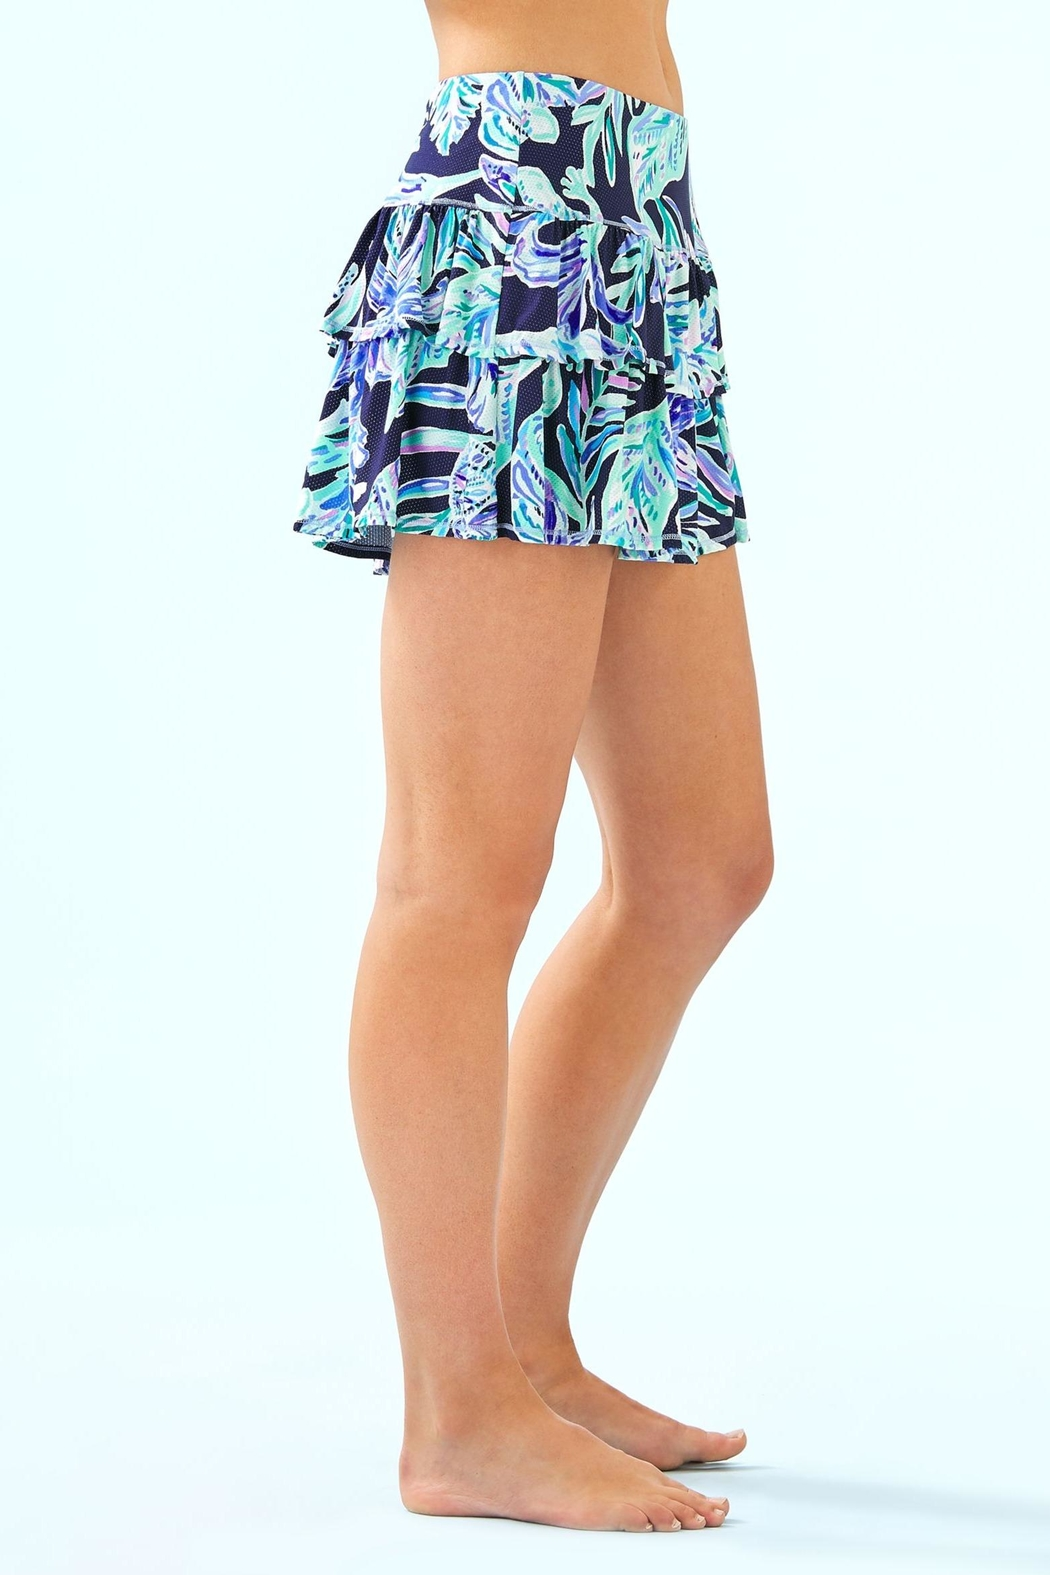 Lilly Pulitzer Luxletic Althea Active-Skort - Side Cropped Image